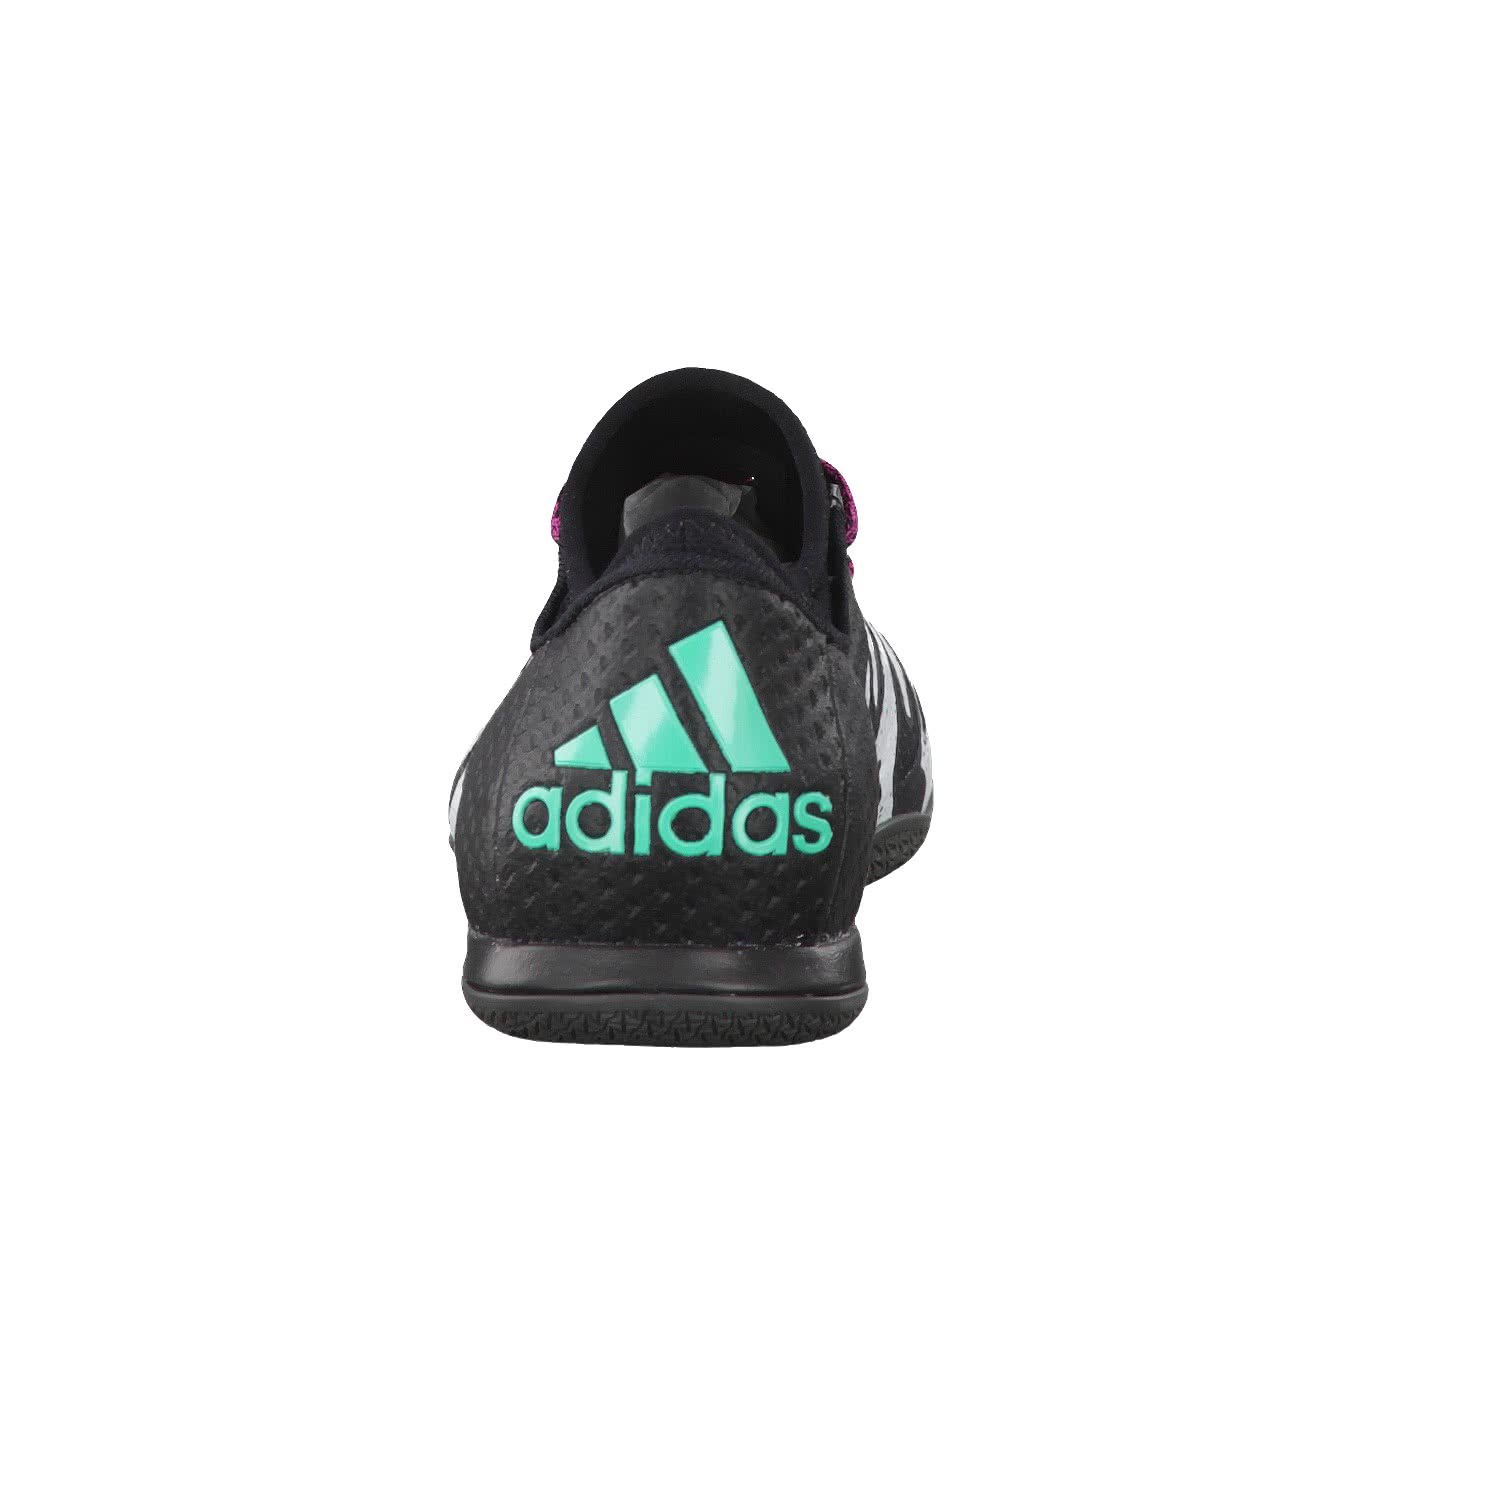 a8ec5d9d6 adidas X 15+ Primeknit Court Mens Indoor Soccer Cleats  Amazon.ca  Sports    Outdoors